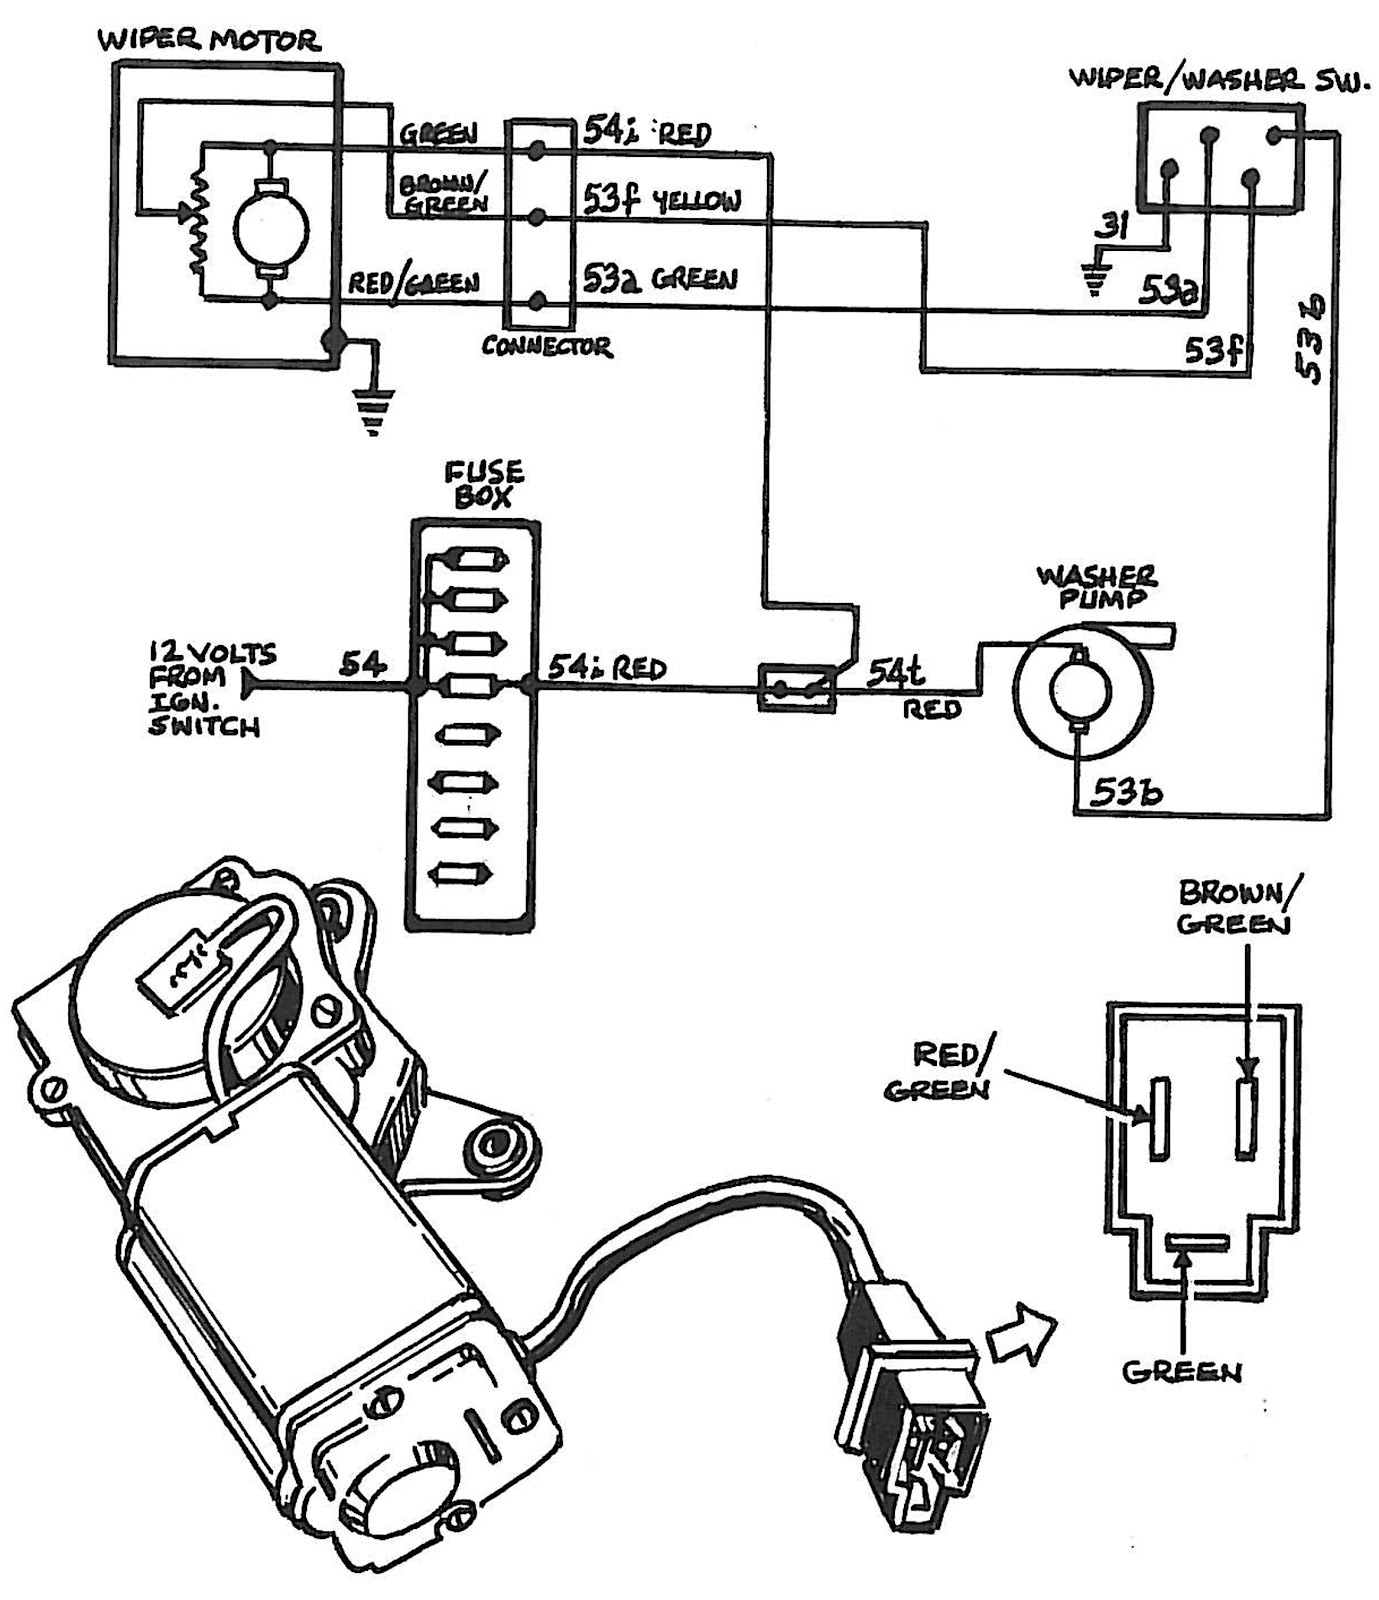 Chevrolet Wiper Wiring Diagram on 1966 mustang headlight wiring diagram